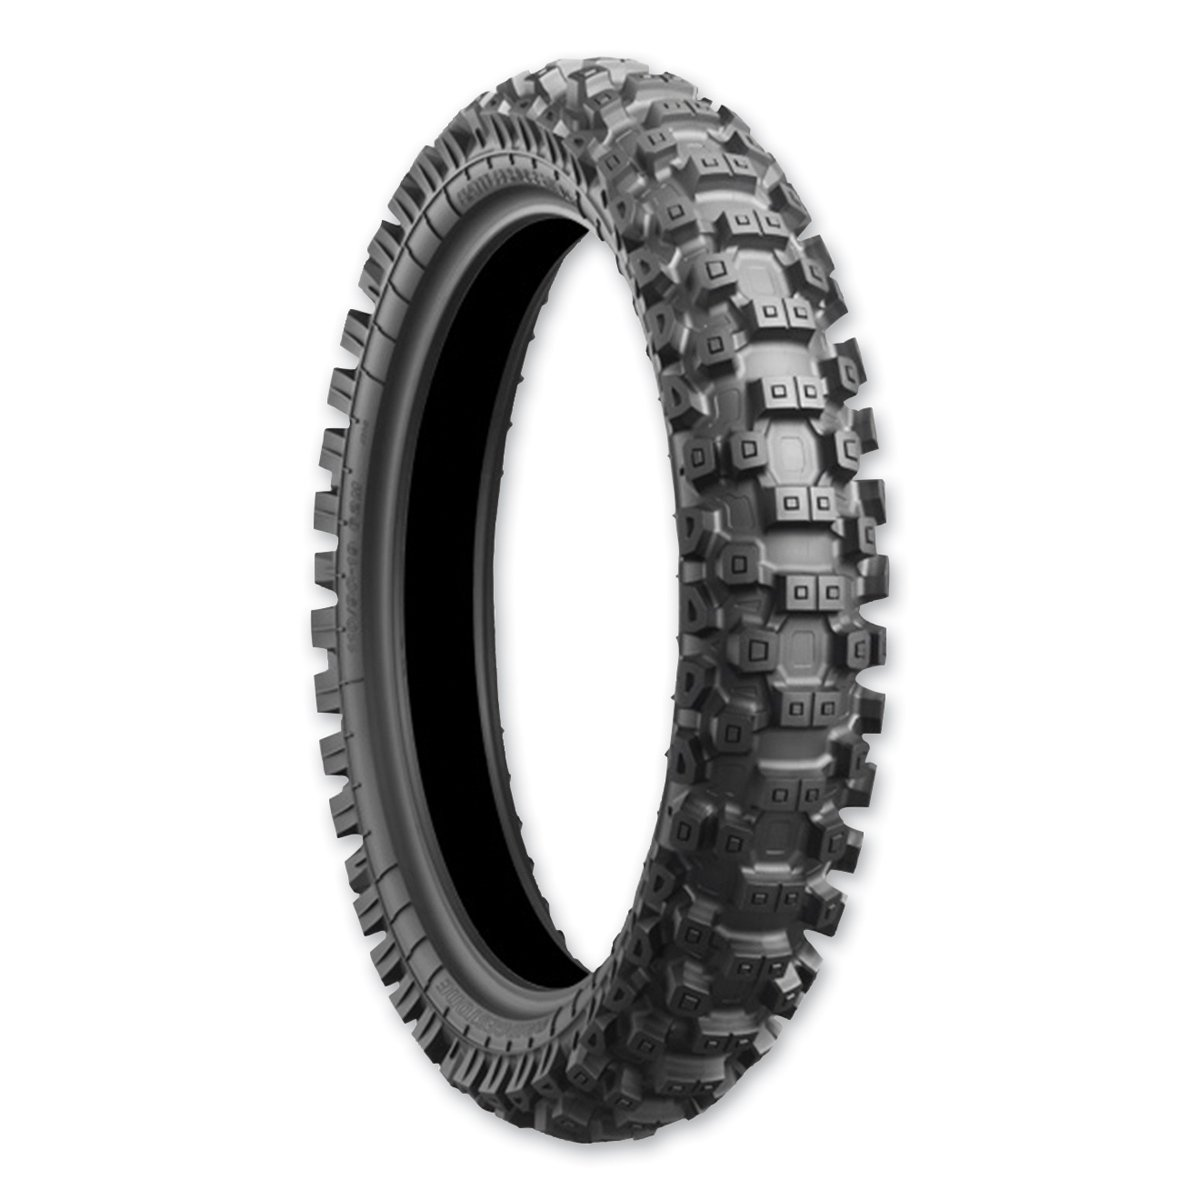 Bridgestone Battlecross X30 Rear Tire (100/90-19)